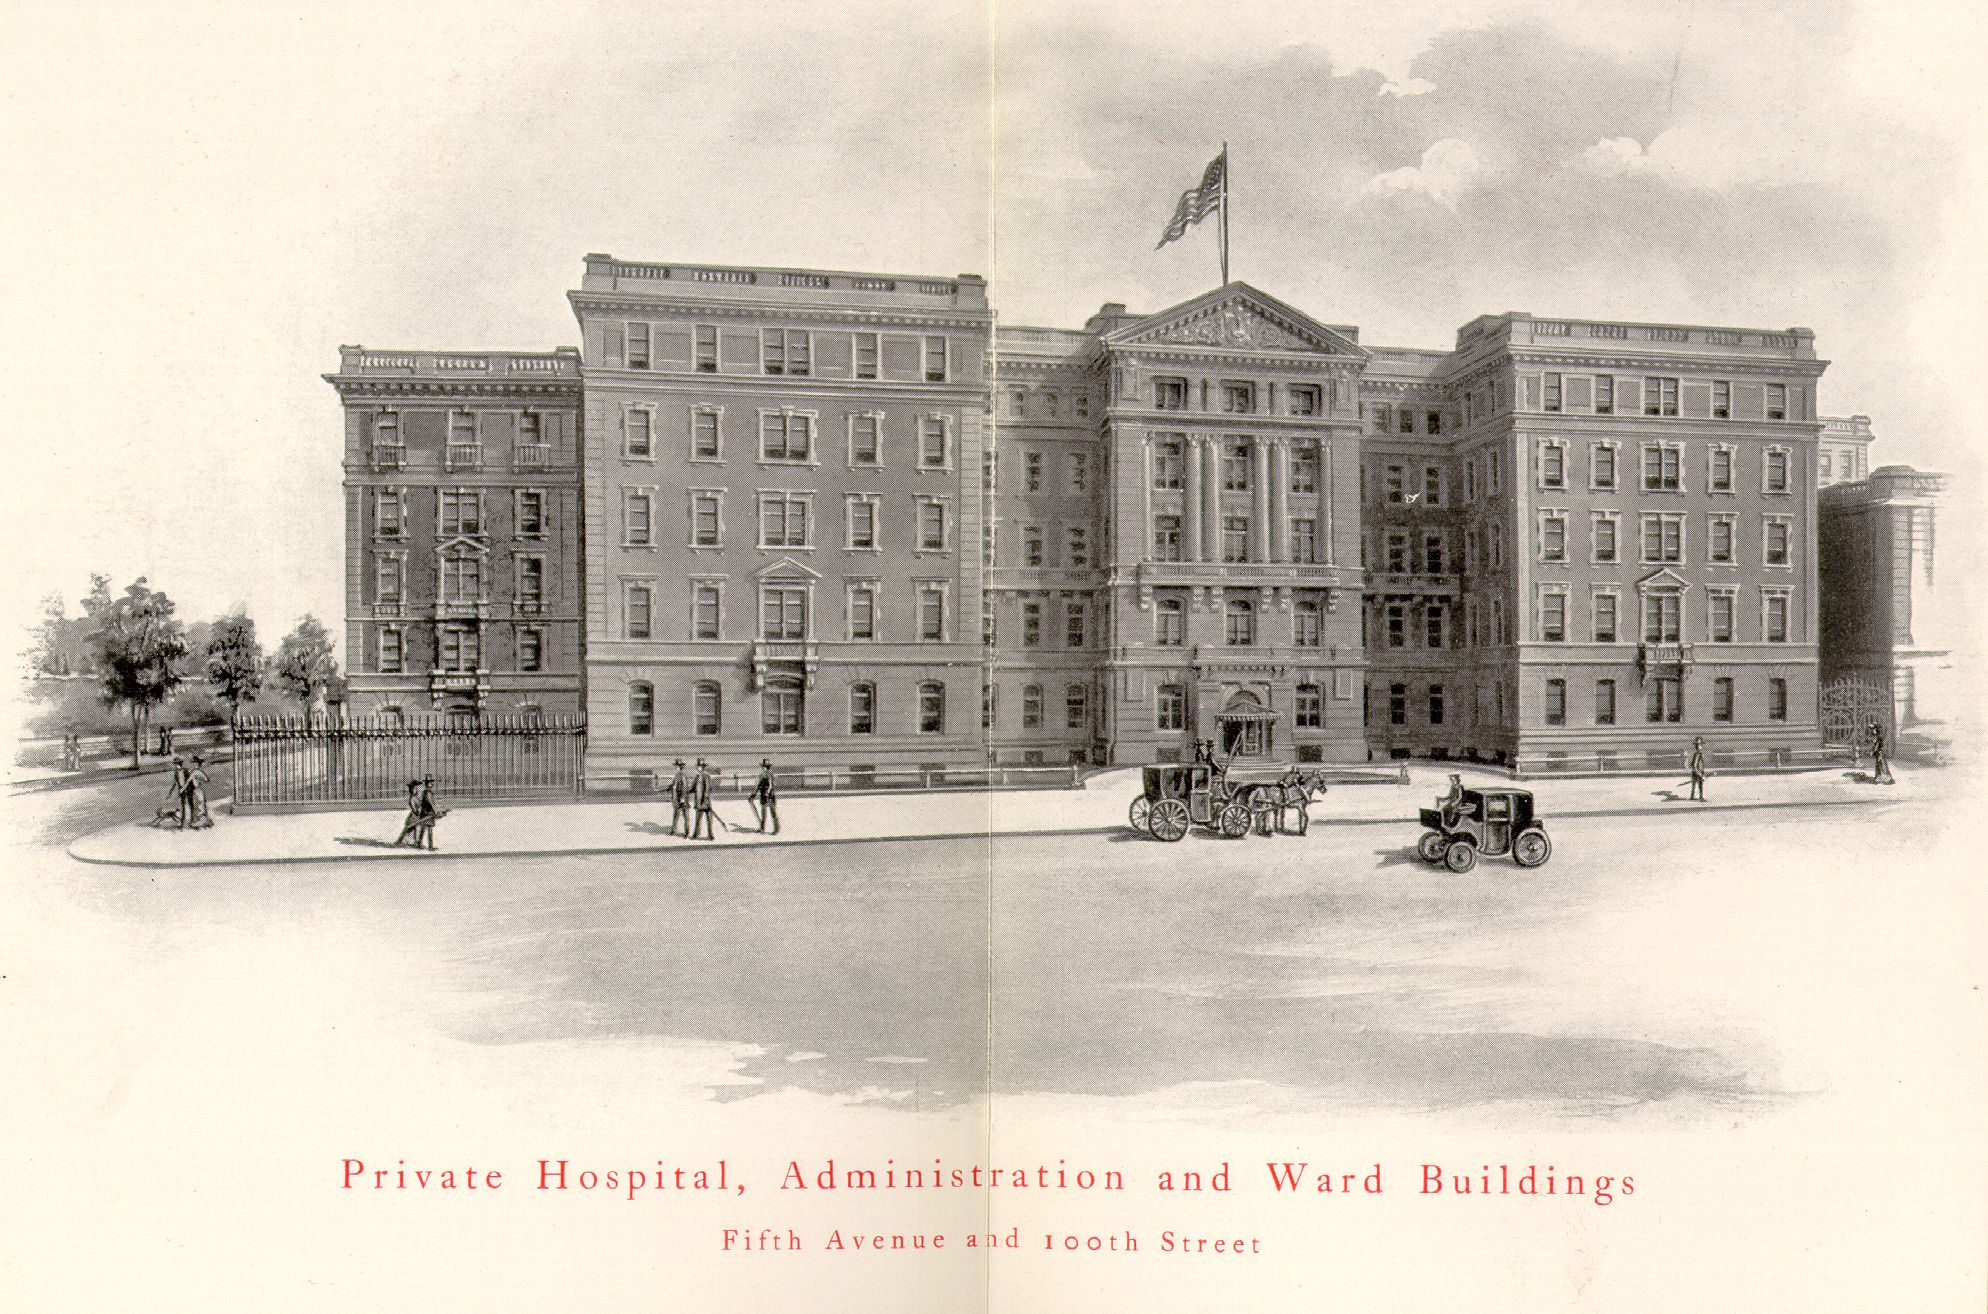 In 1904, The Mount Sinai Hospital moved to its present